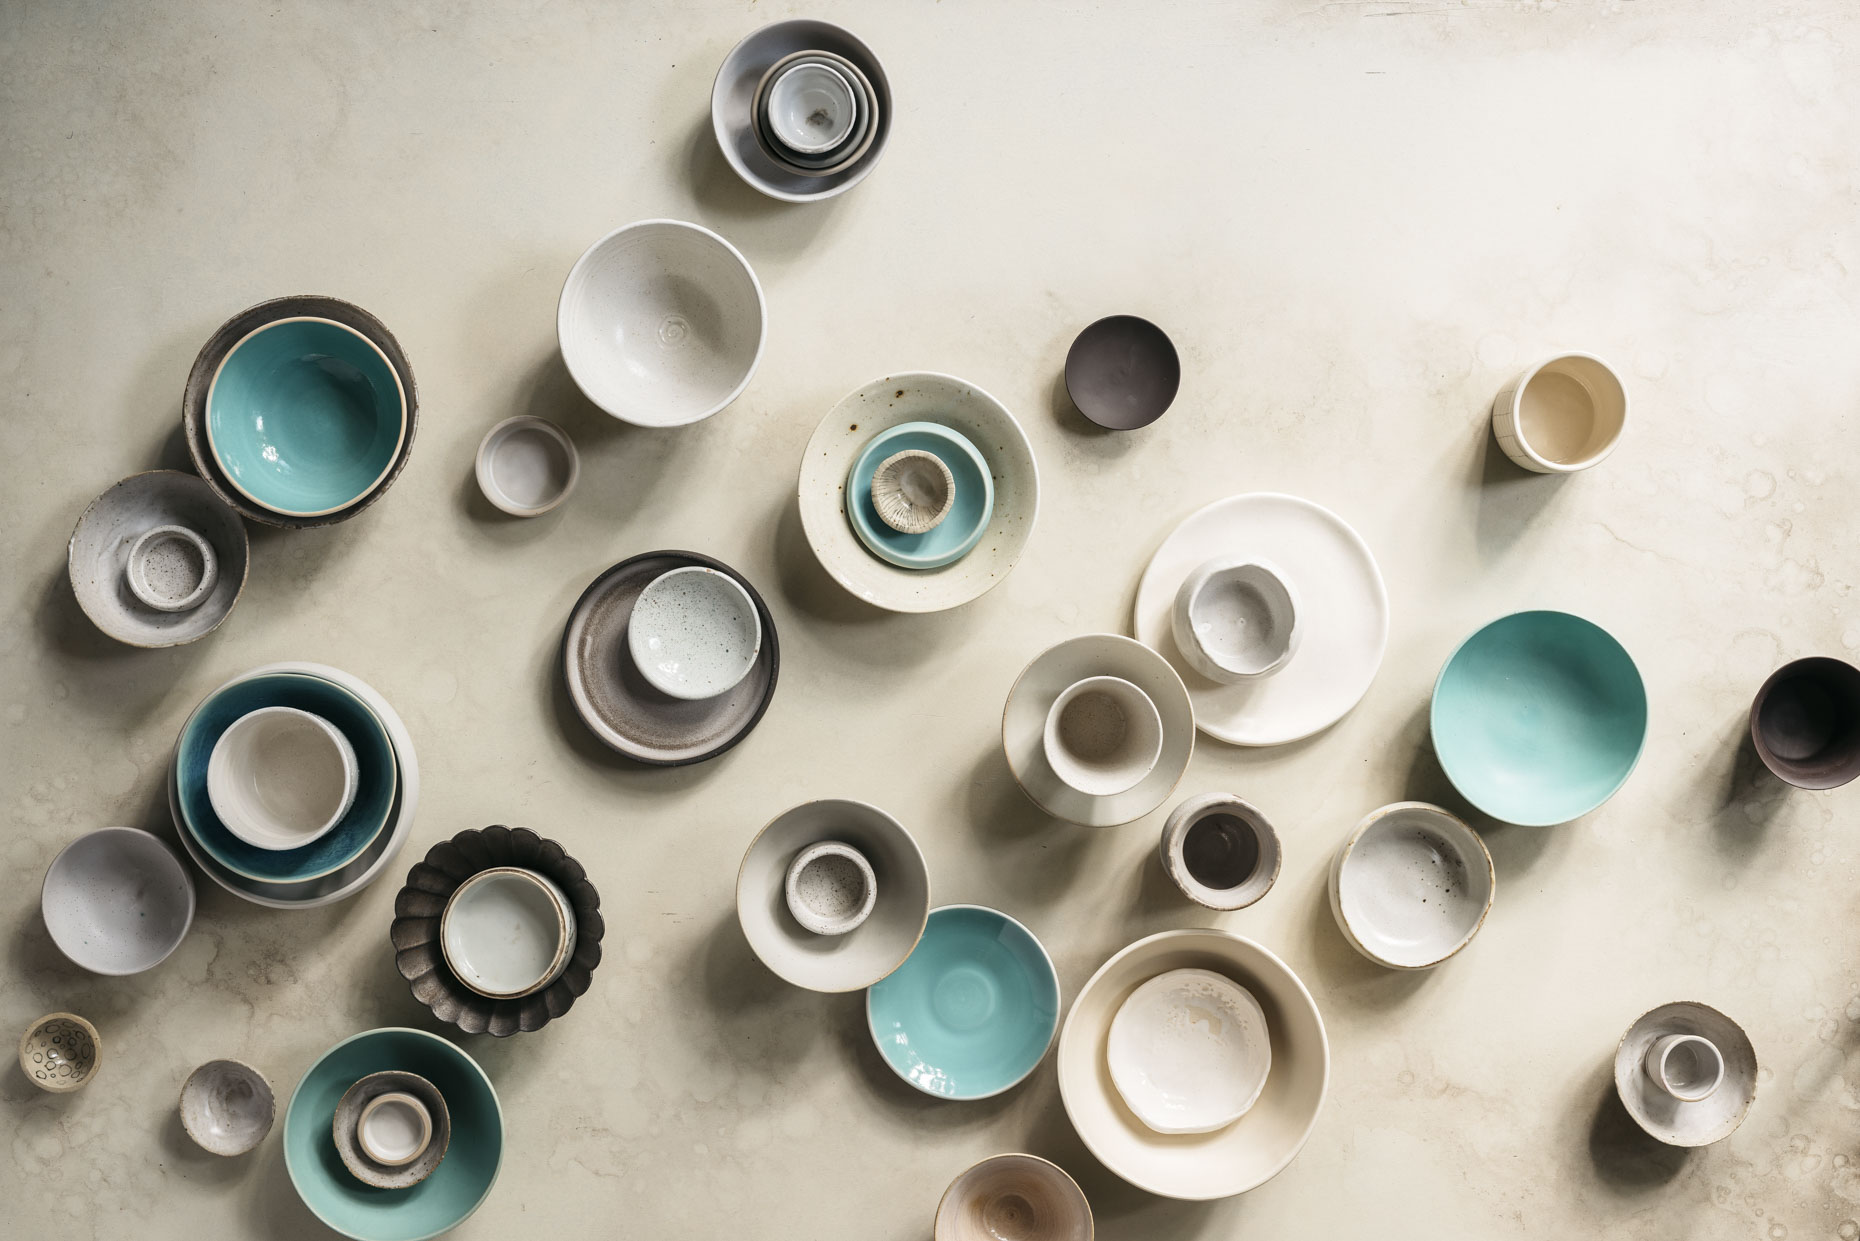 Modern handmade collection of ceramic cups, bowls plates collection on plaster table